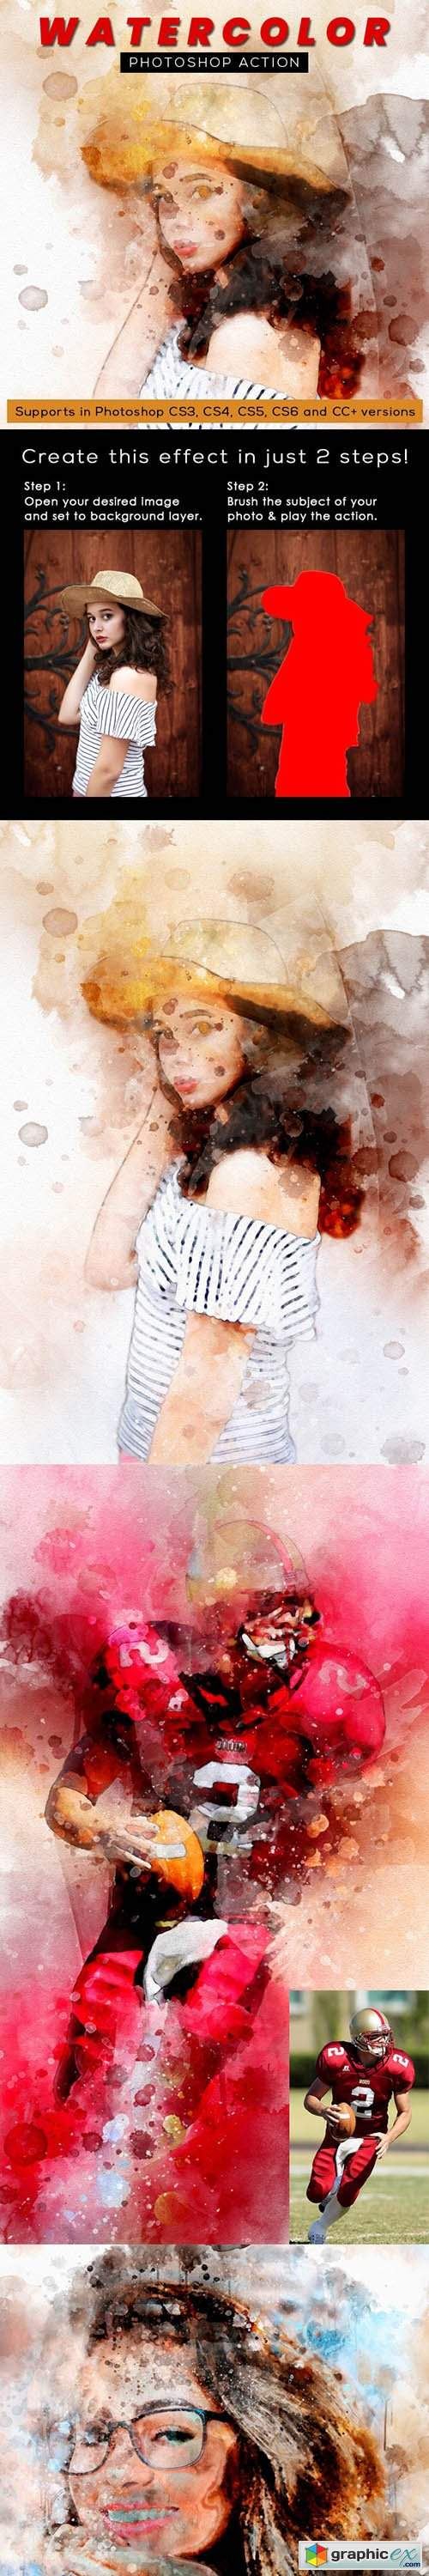 Watercolor Photoshop Action 26297940